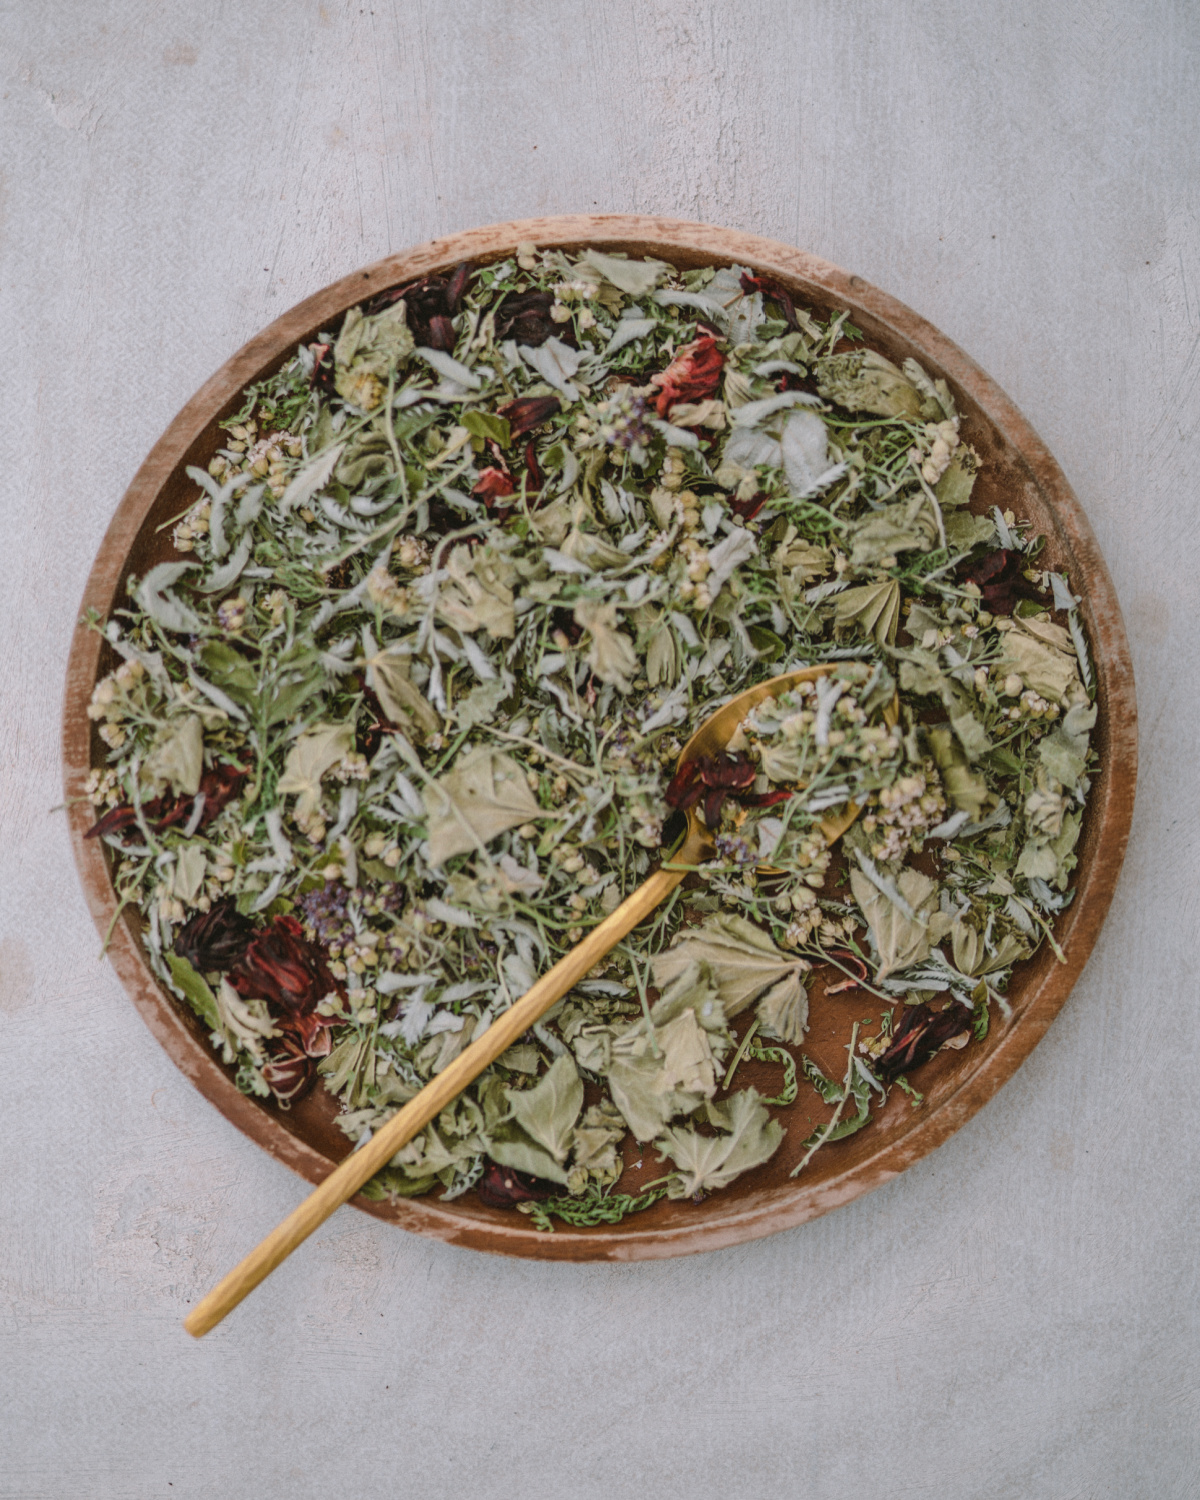 dried herbs in a wooden bowl ready to make Moon Tea